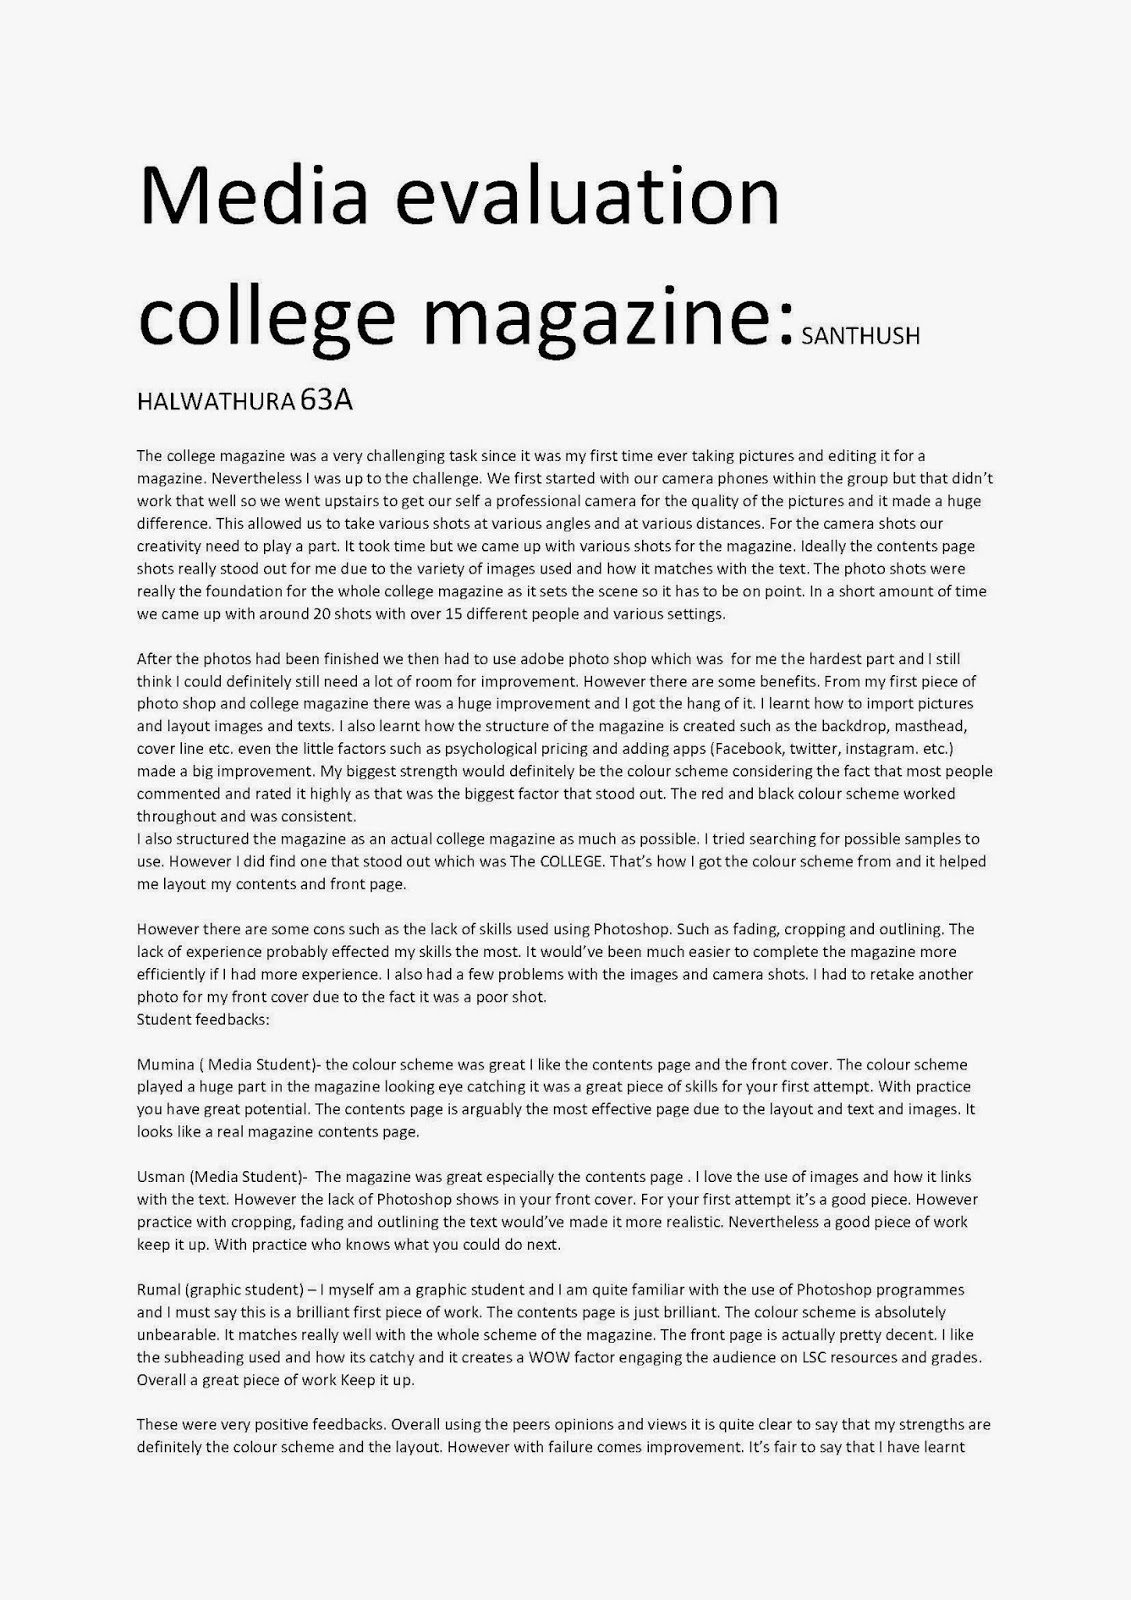 016 Mediaevaluationcollegemagazine Page 1 Evaluation Essay Amazing Example Pdf Examples For Students Full